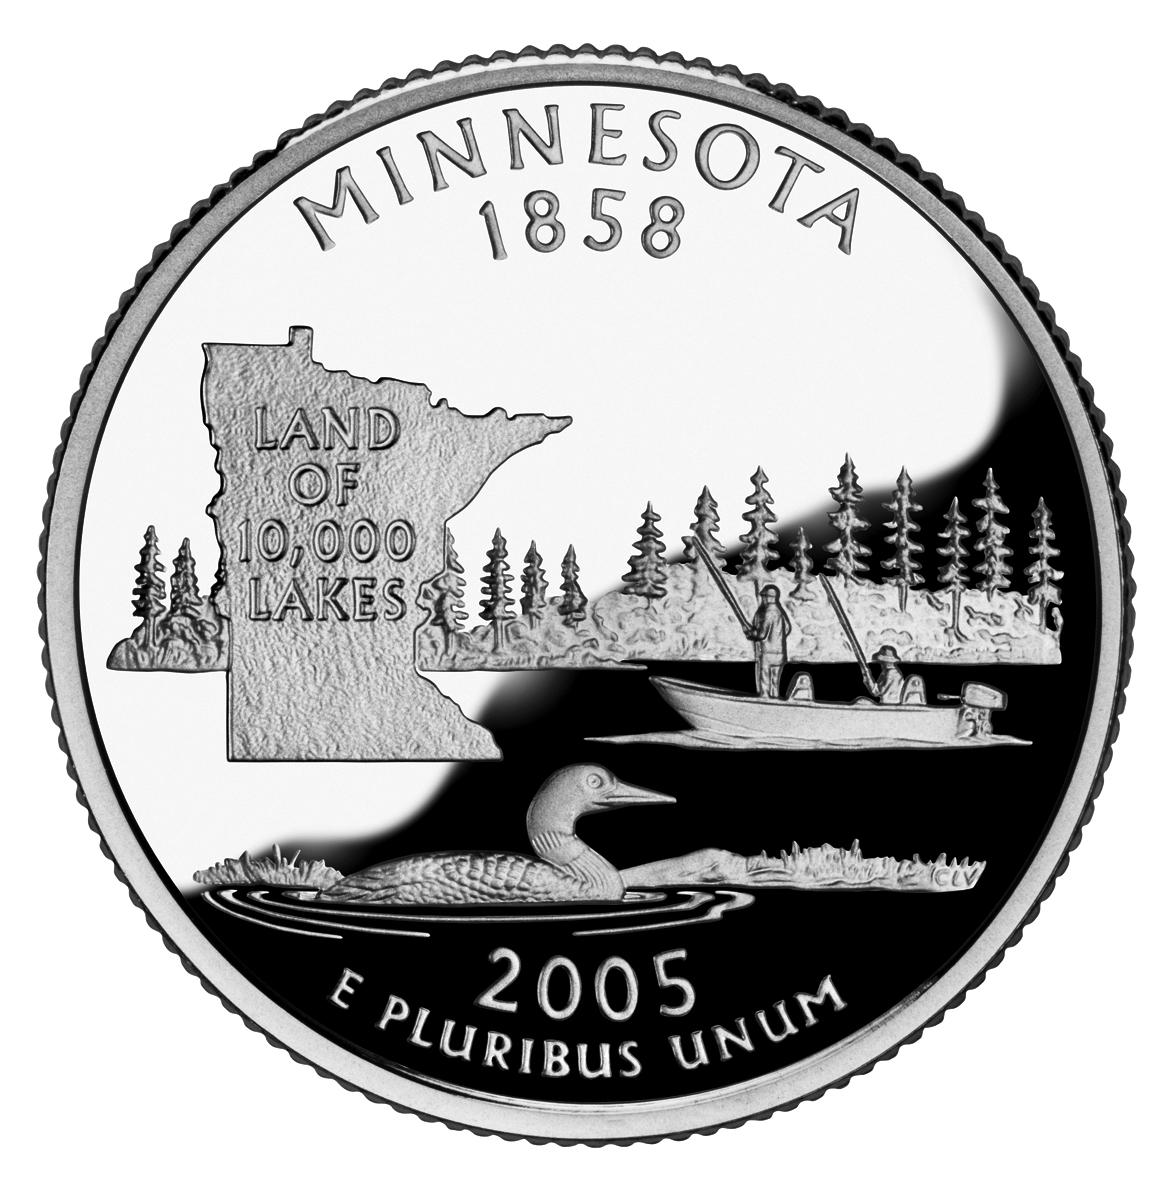 minnesota economy quarter 2005 wikipedia reverse side